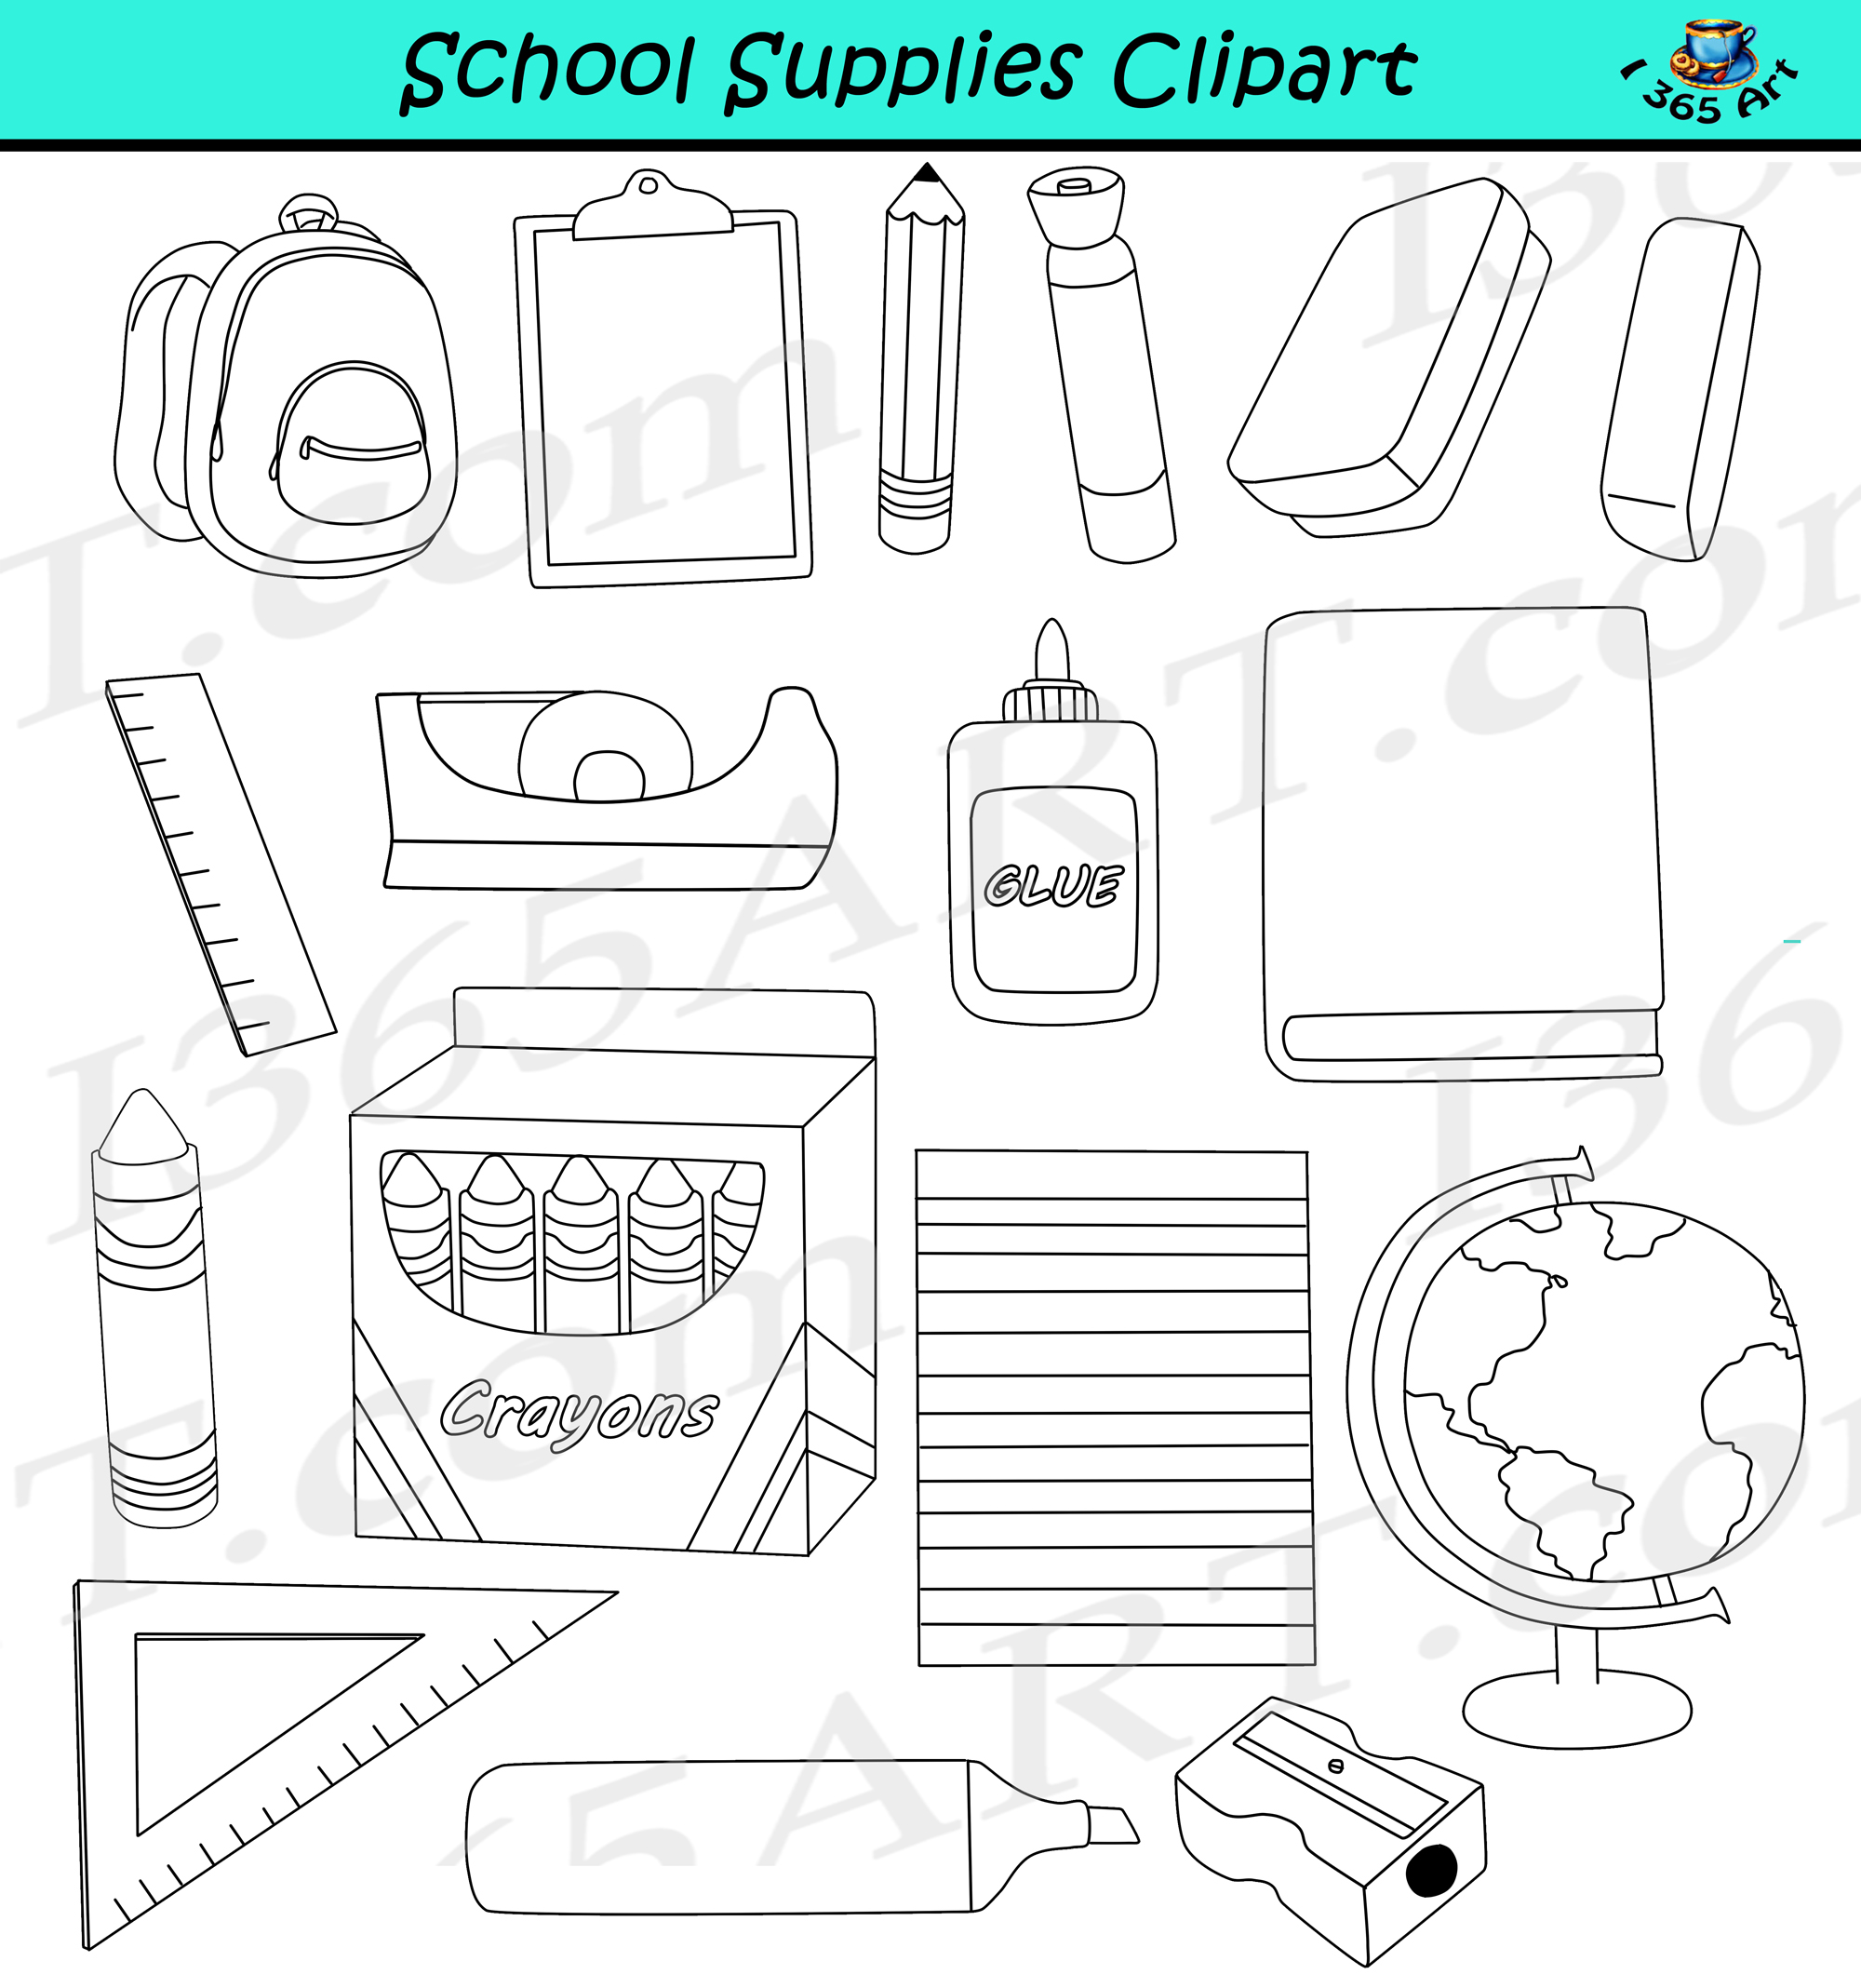 school supplies clipart - back to school - commercial graphics